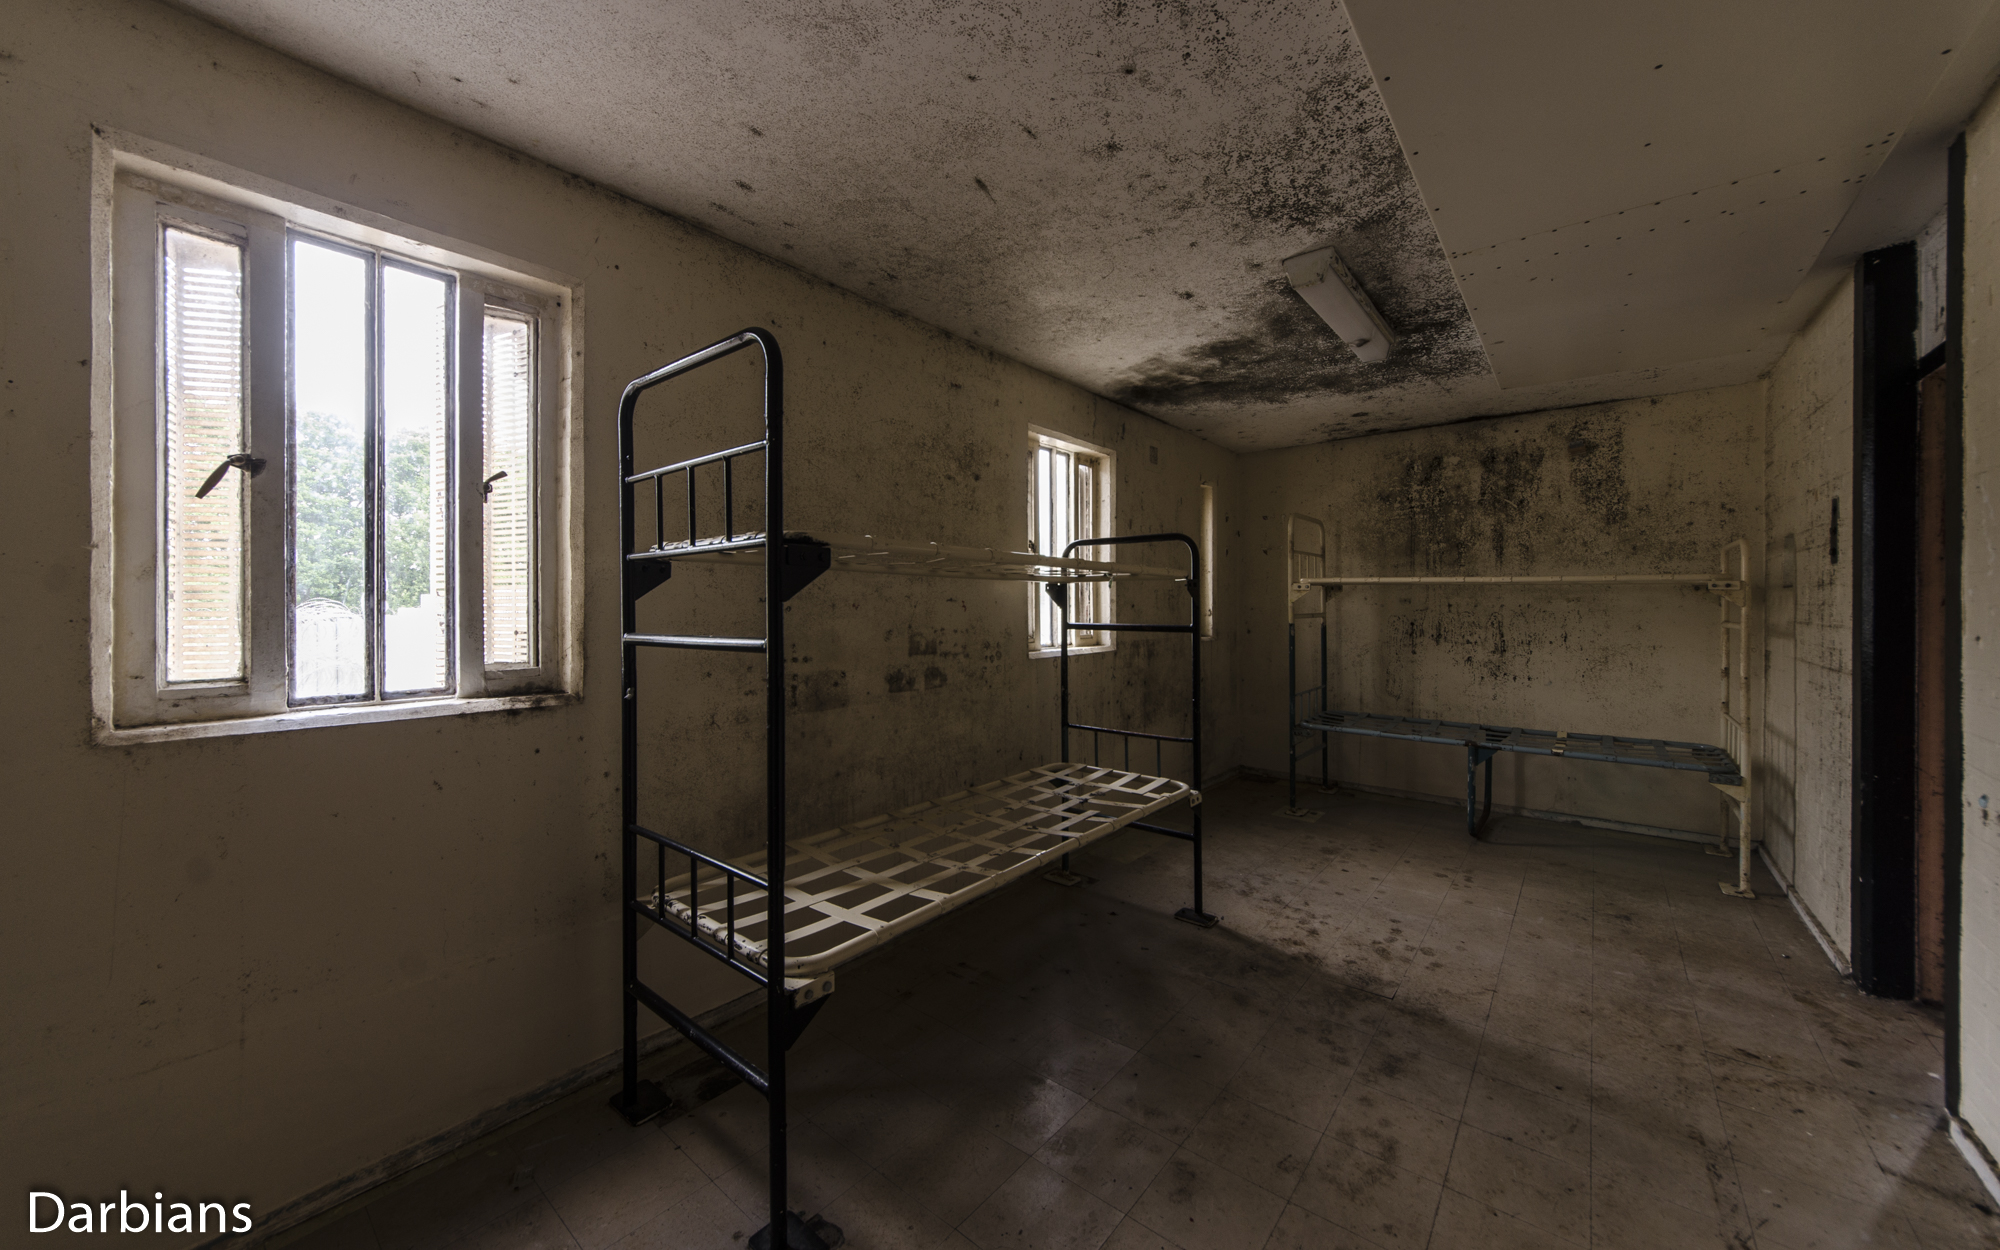 HMP Blundeston Prison. Another cell with decay.